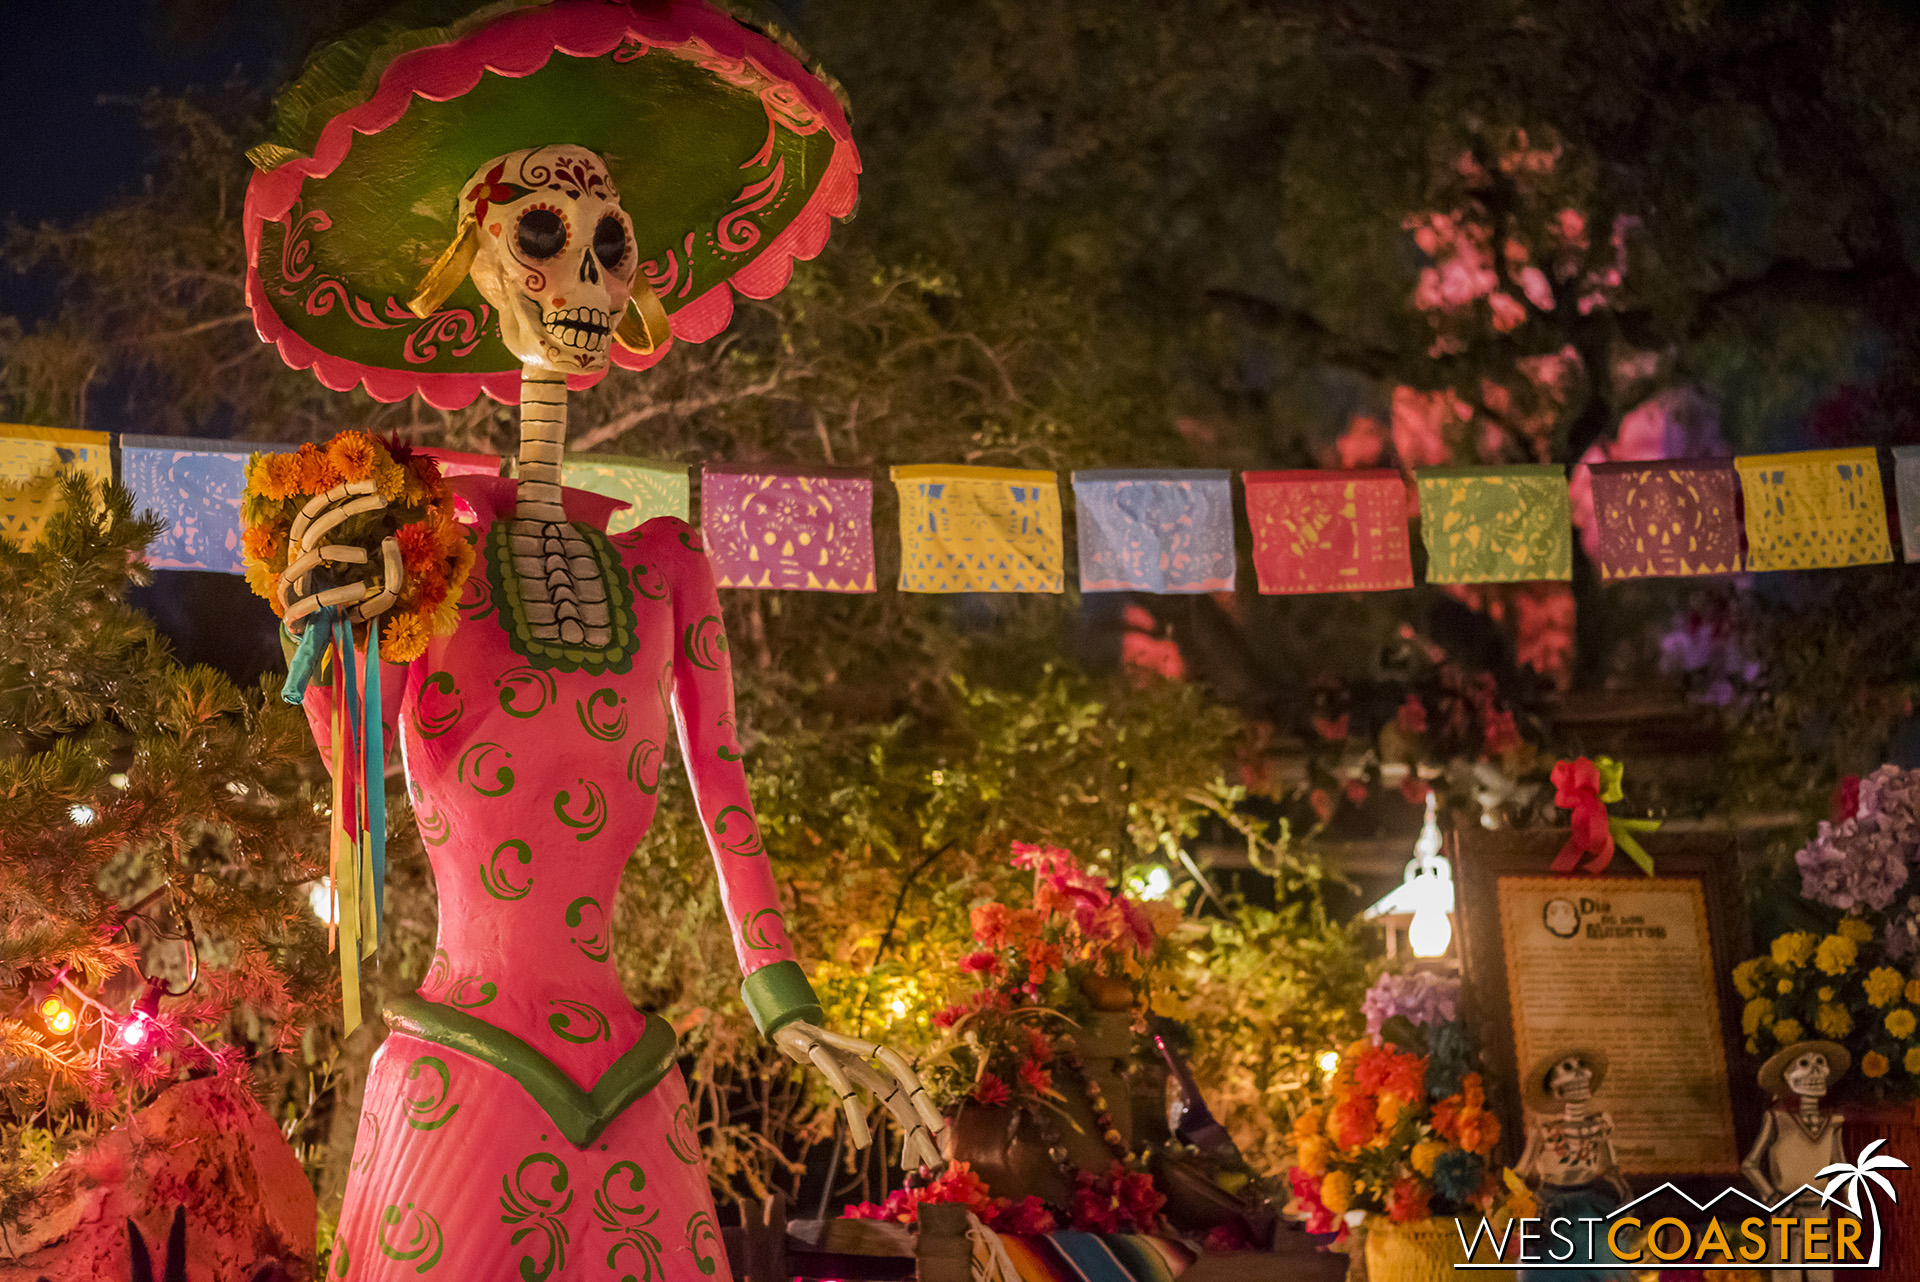 The Día de los Muertos set is back in Zocalo Park.